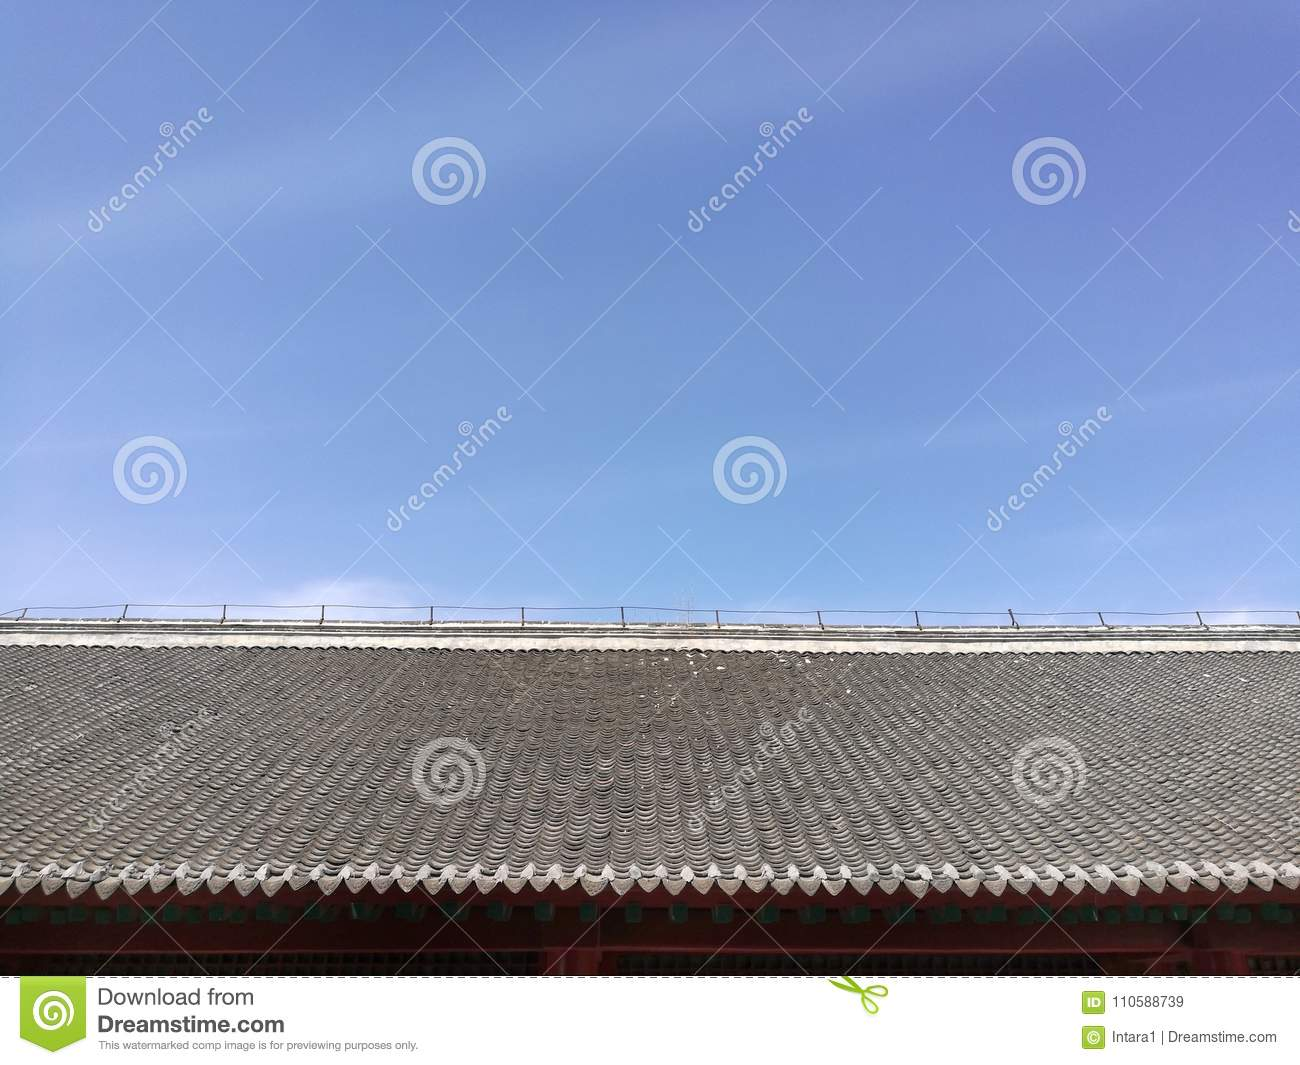 Chinese traditional tiled roof and blue sky with top copy-space; taken in Shenyang, Liaoning province, China.